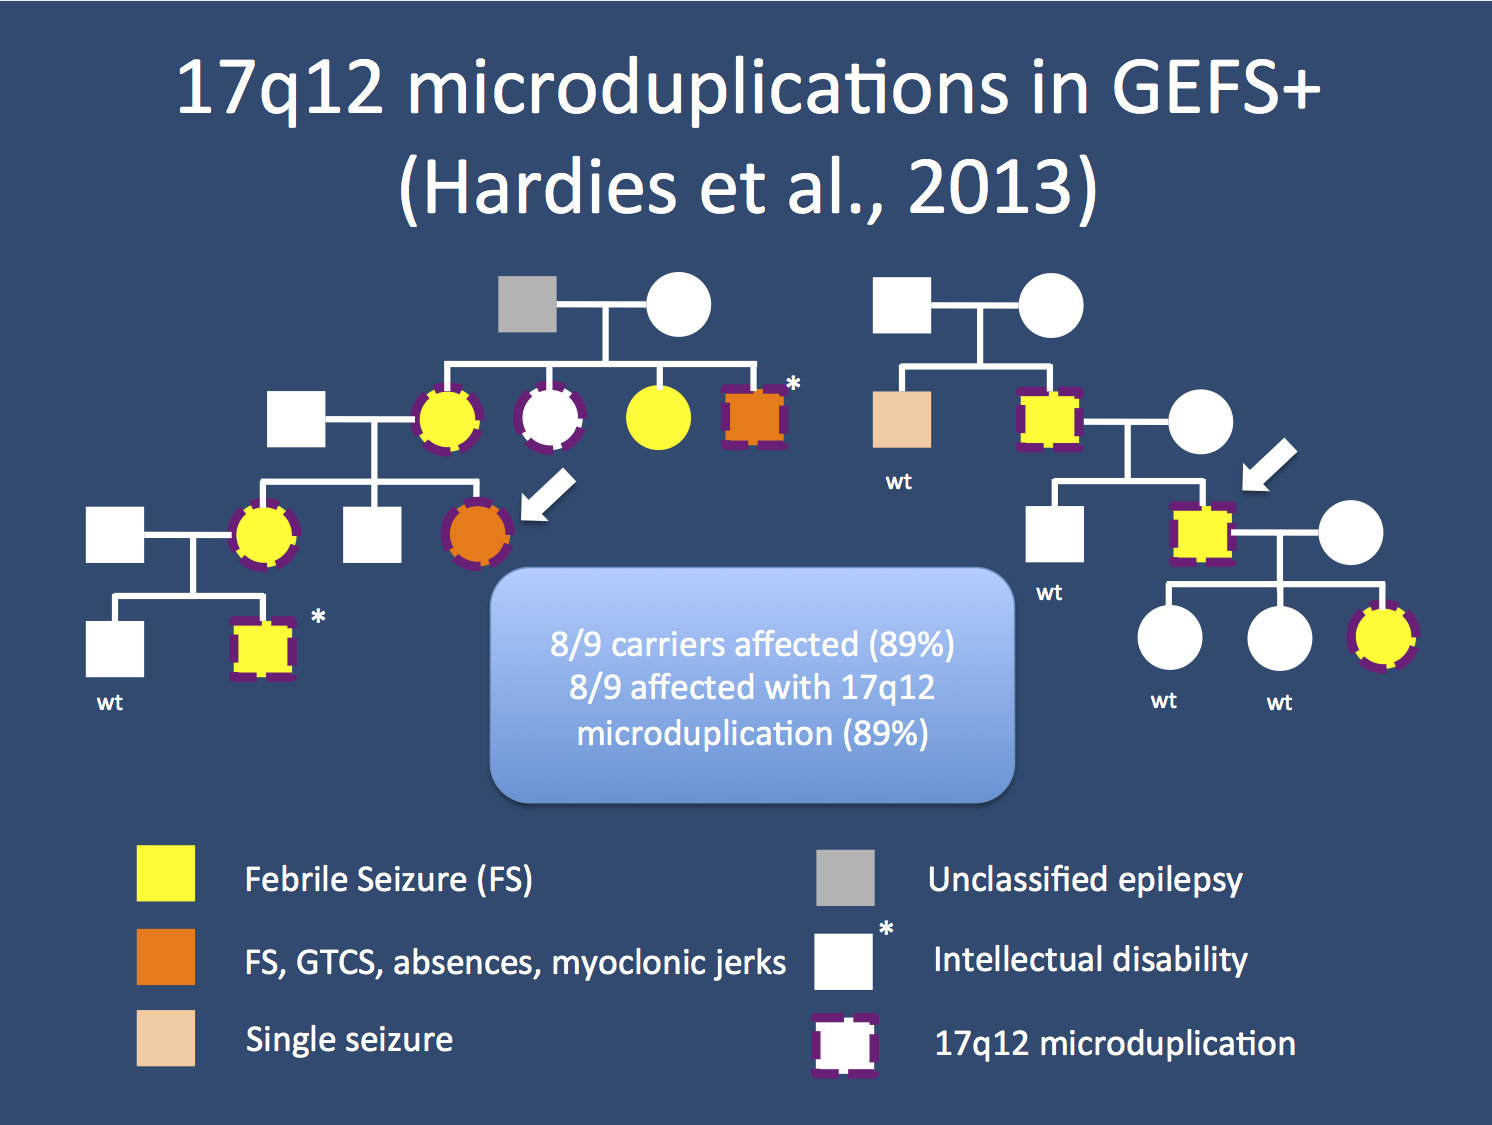 Temperature rising: 17q12 microduplications and GEFS+